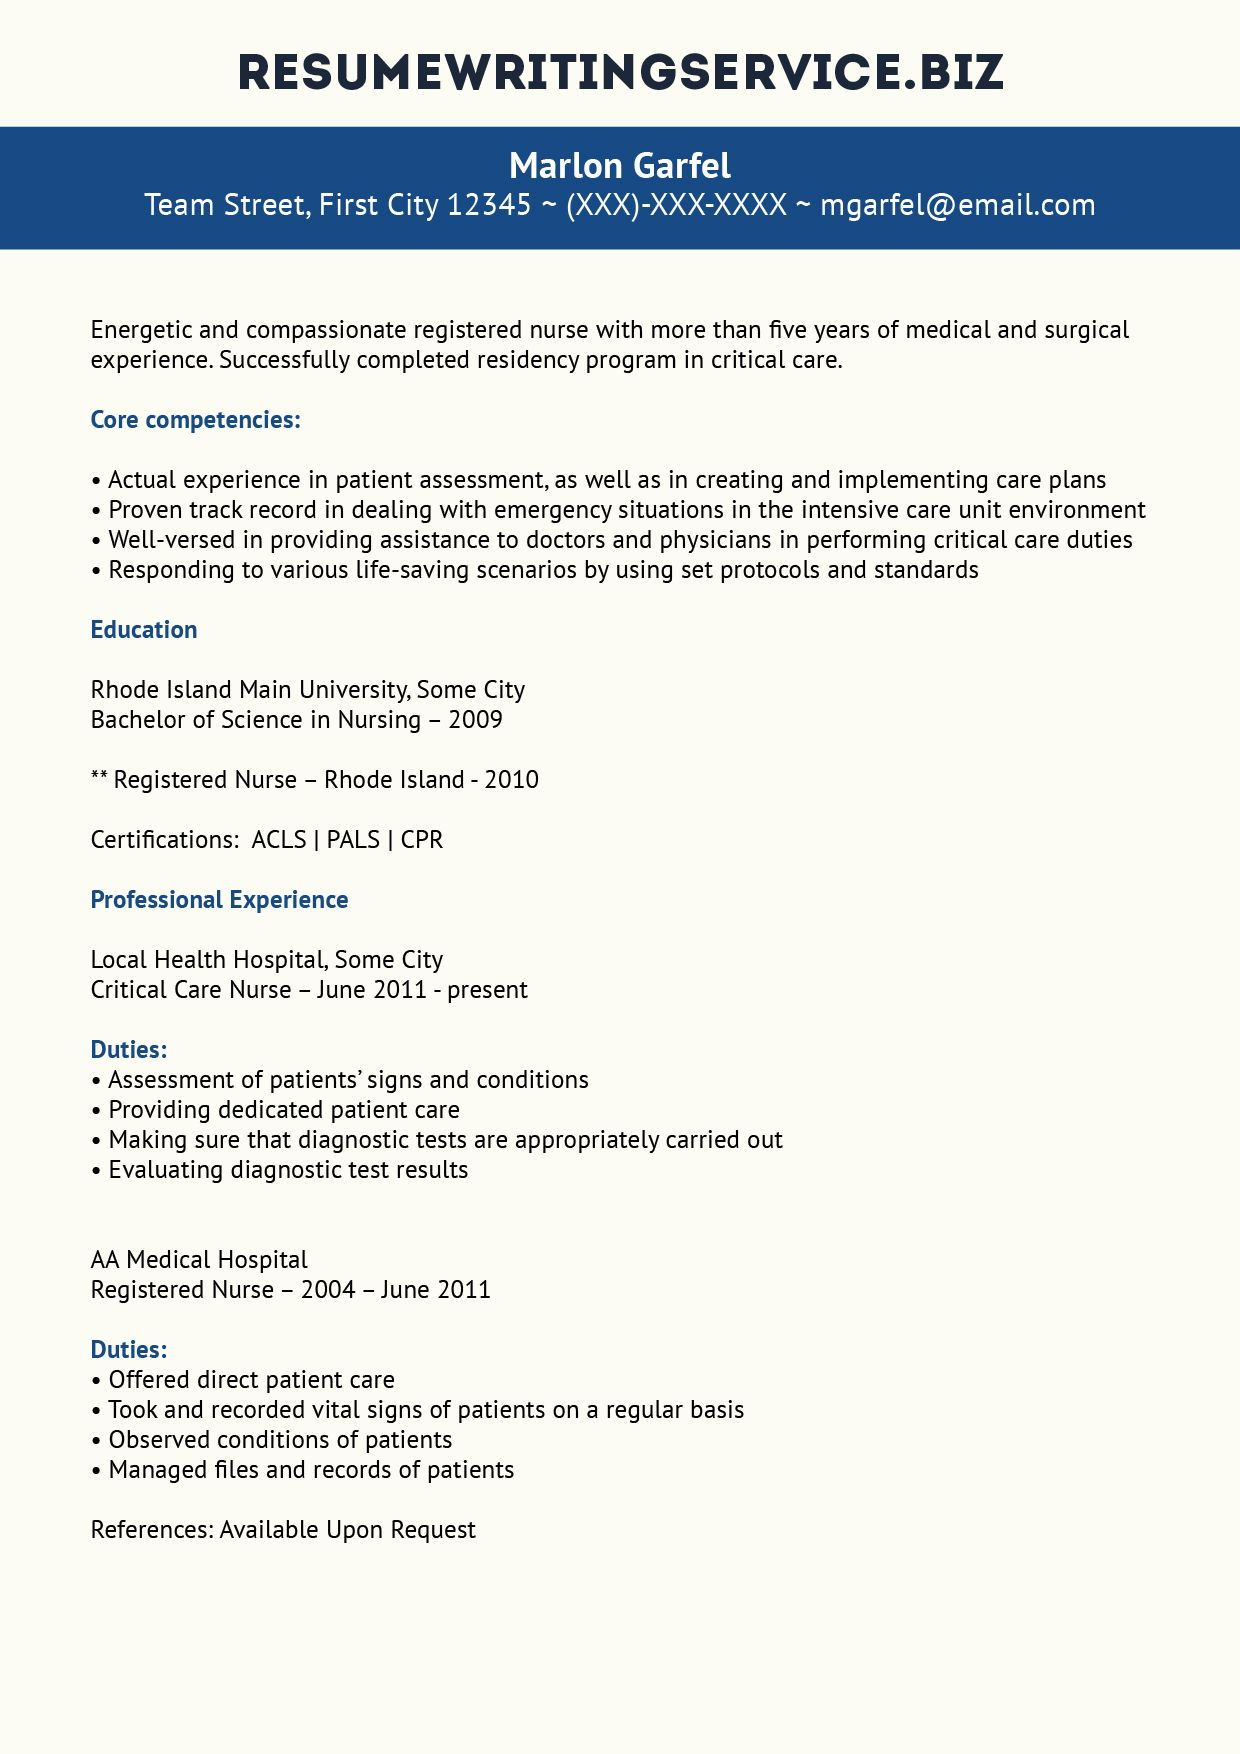 Critical Care Nurse Resume Sample | Student/Career | Pinterest ...